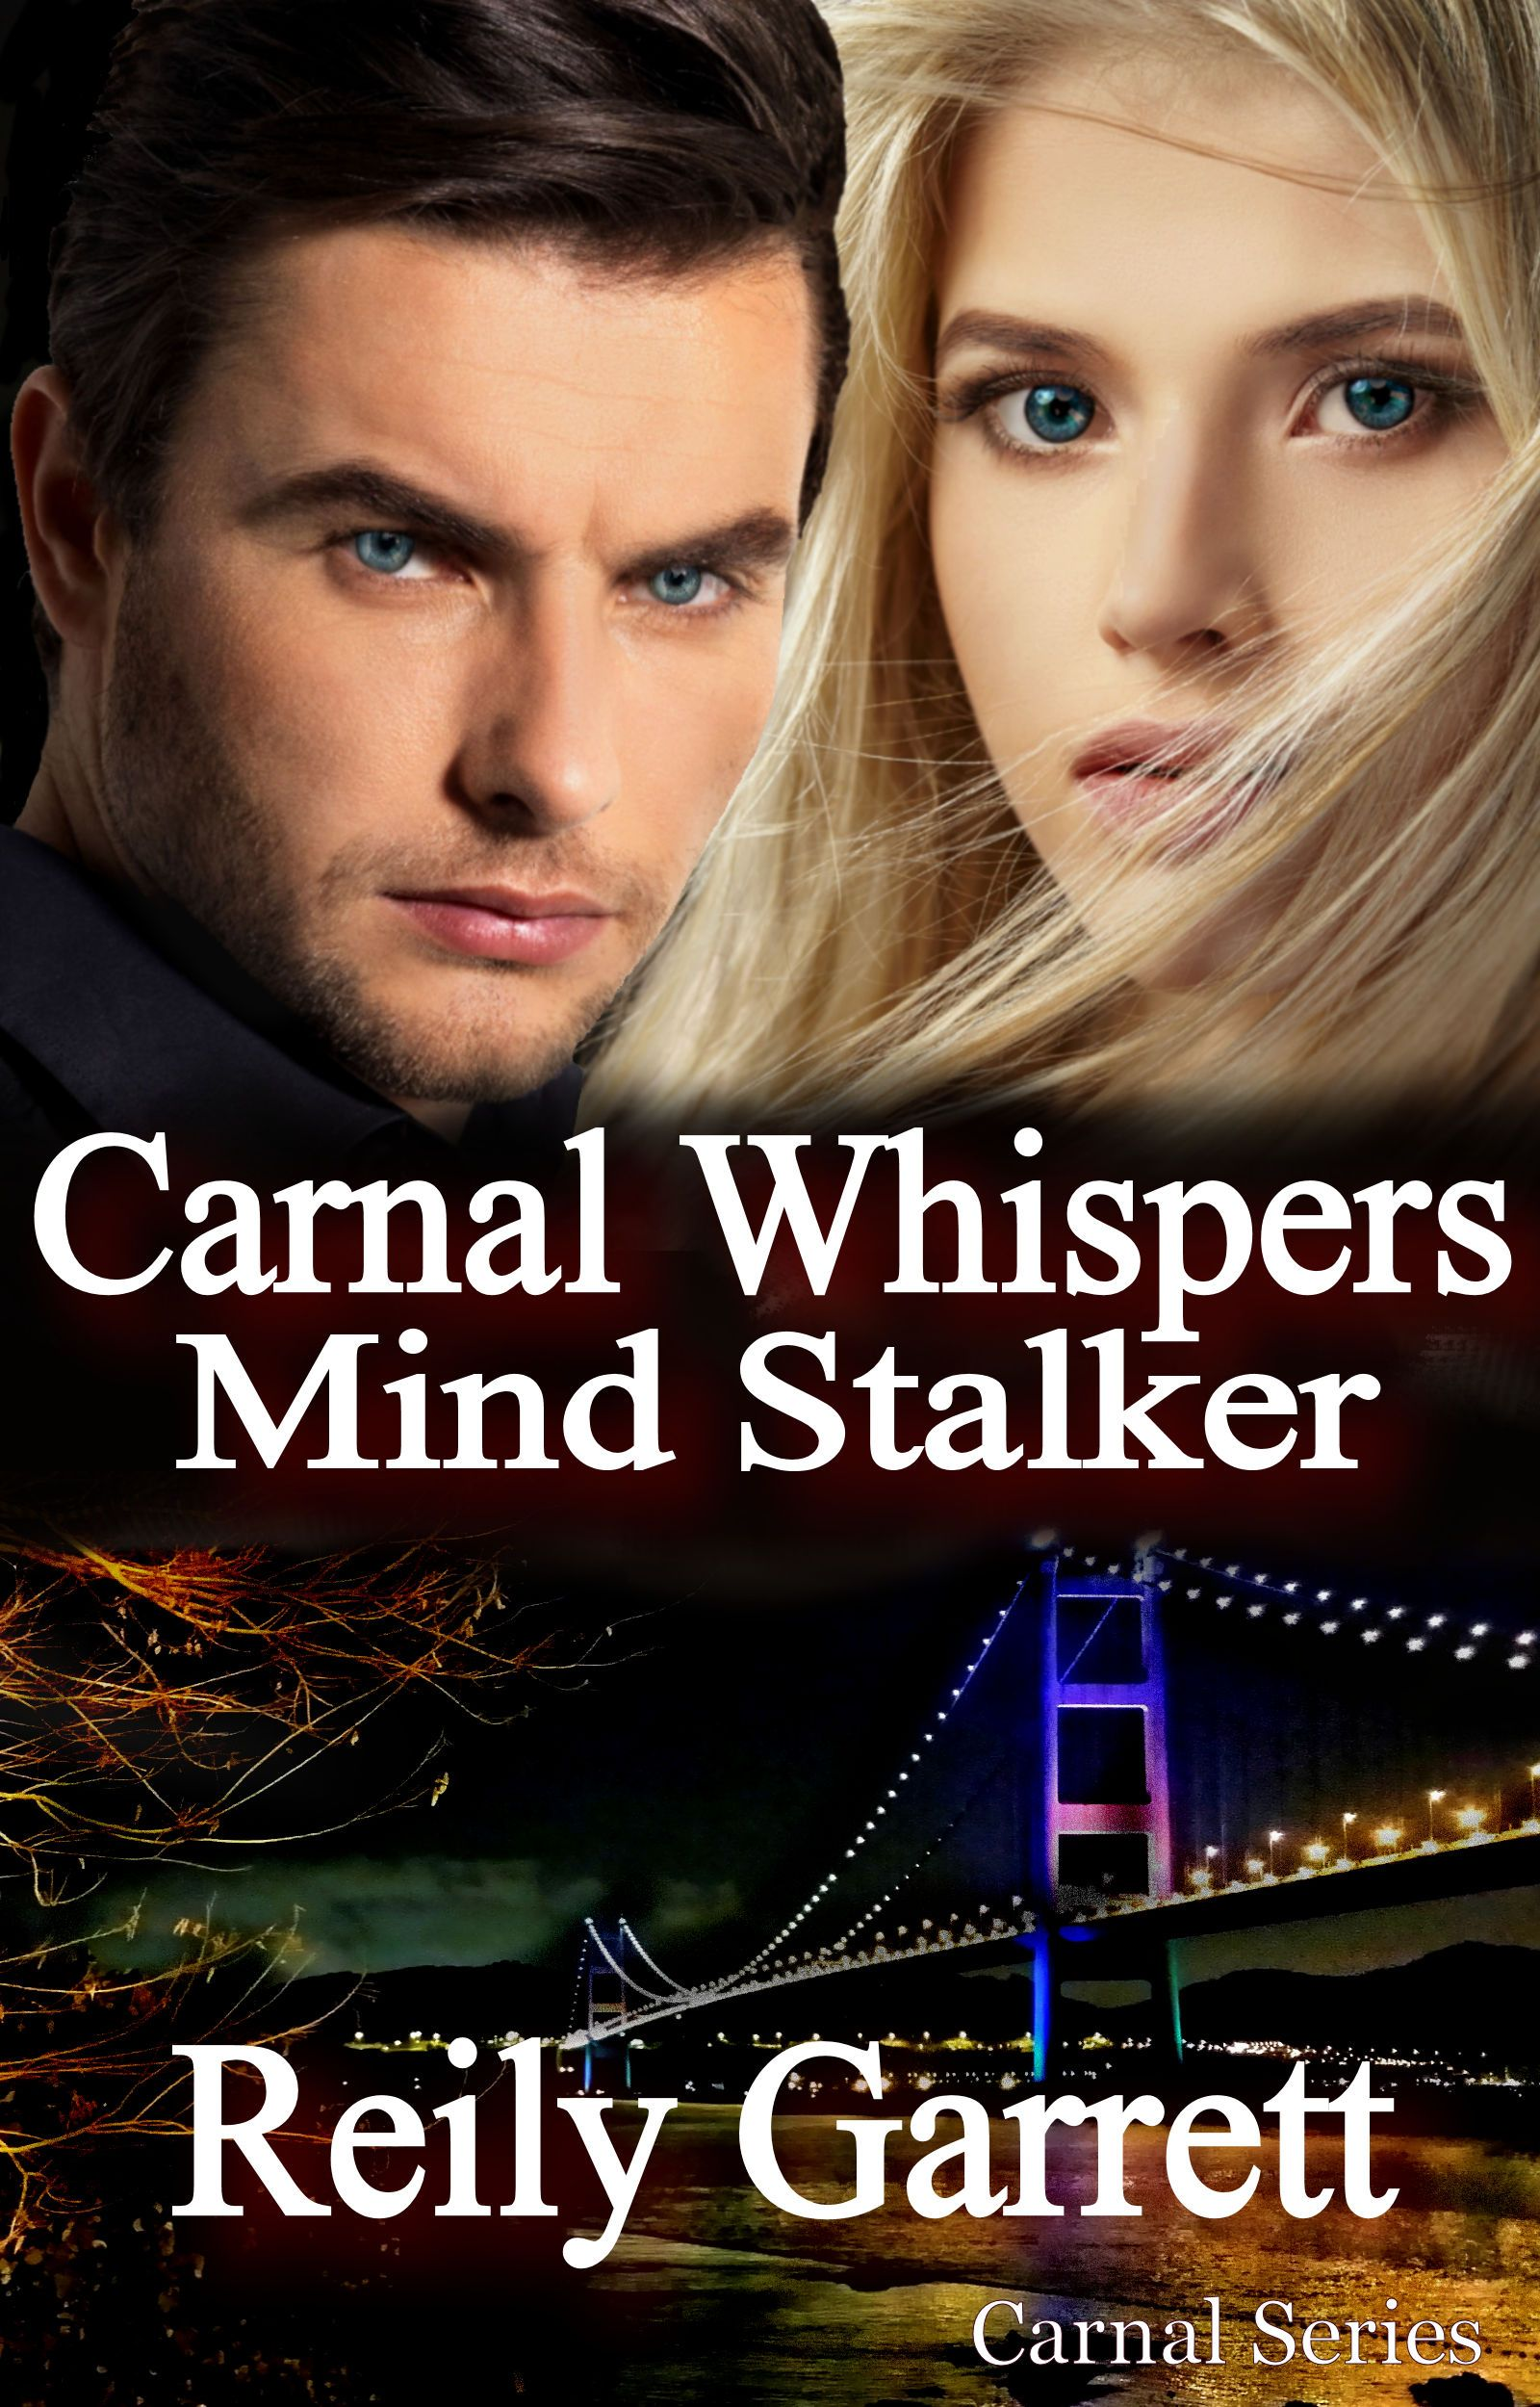 http://booksandspoons.weebly.com/books/books-spoons-virtual-tour-event-carnal-whispers-mind-stalker-by-reily-garrett